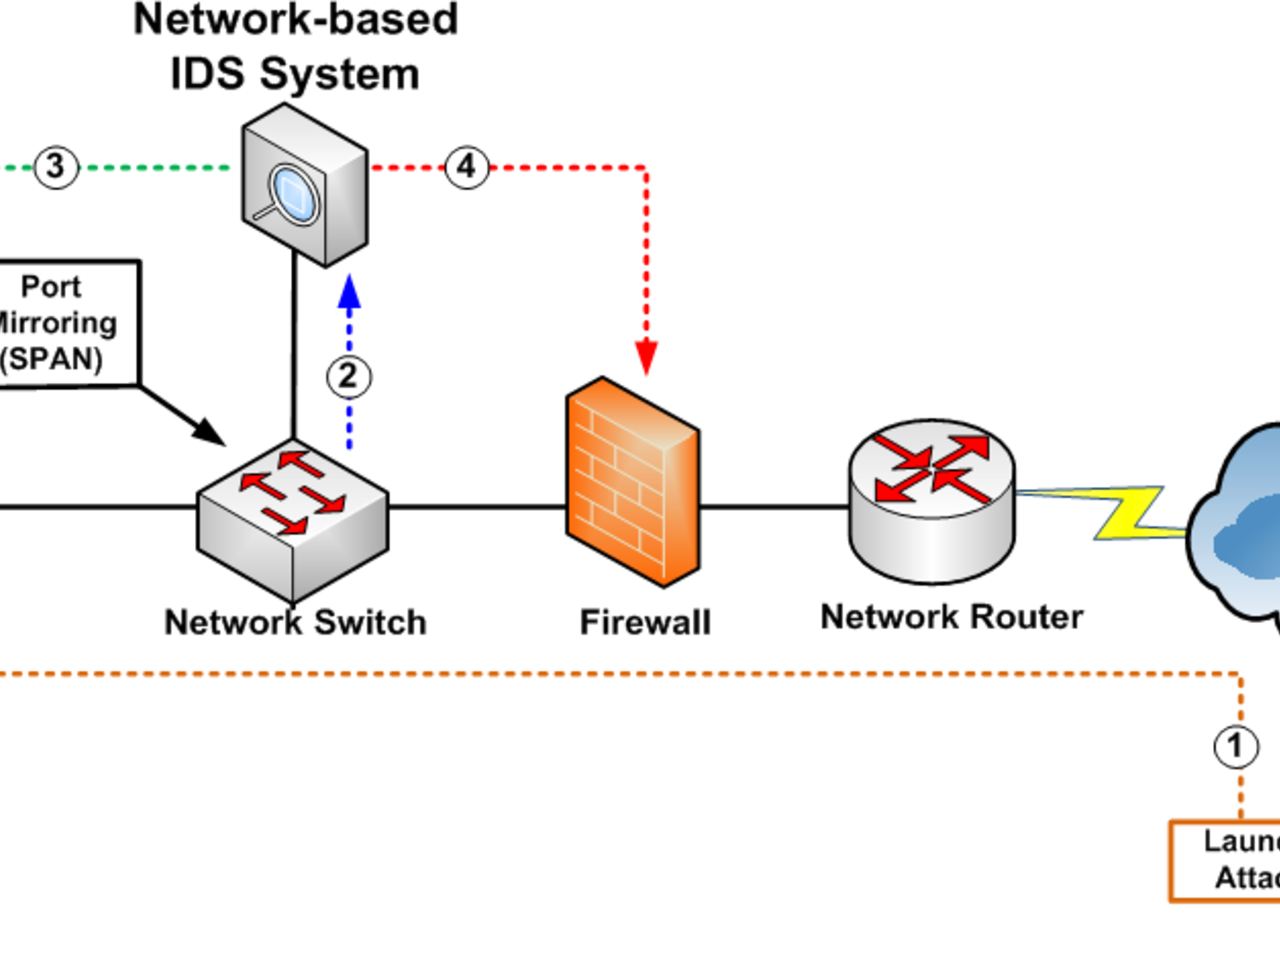 intrusion detection systems An intrusion detection system (ids) is a device or software application that monitors a network or systems for malicious activity or policy violations.